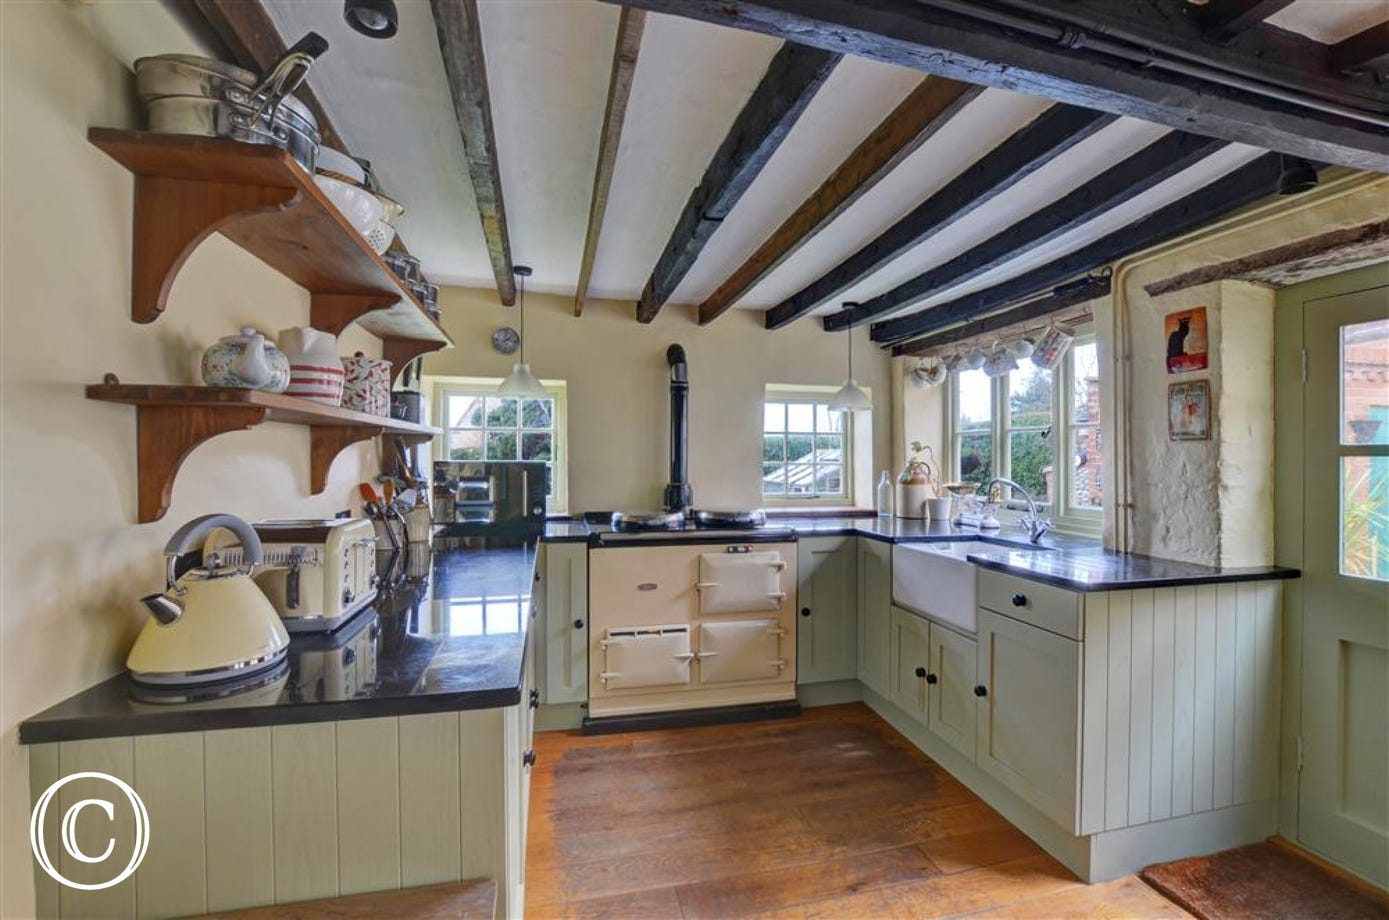 Lovely kitchen with rustic open beams